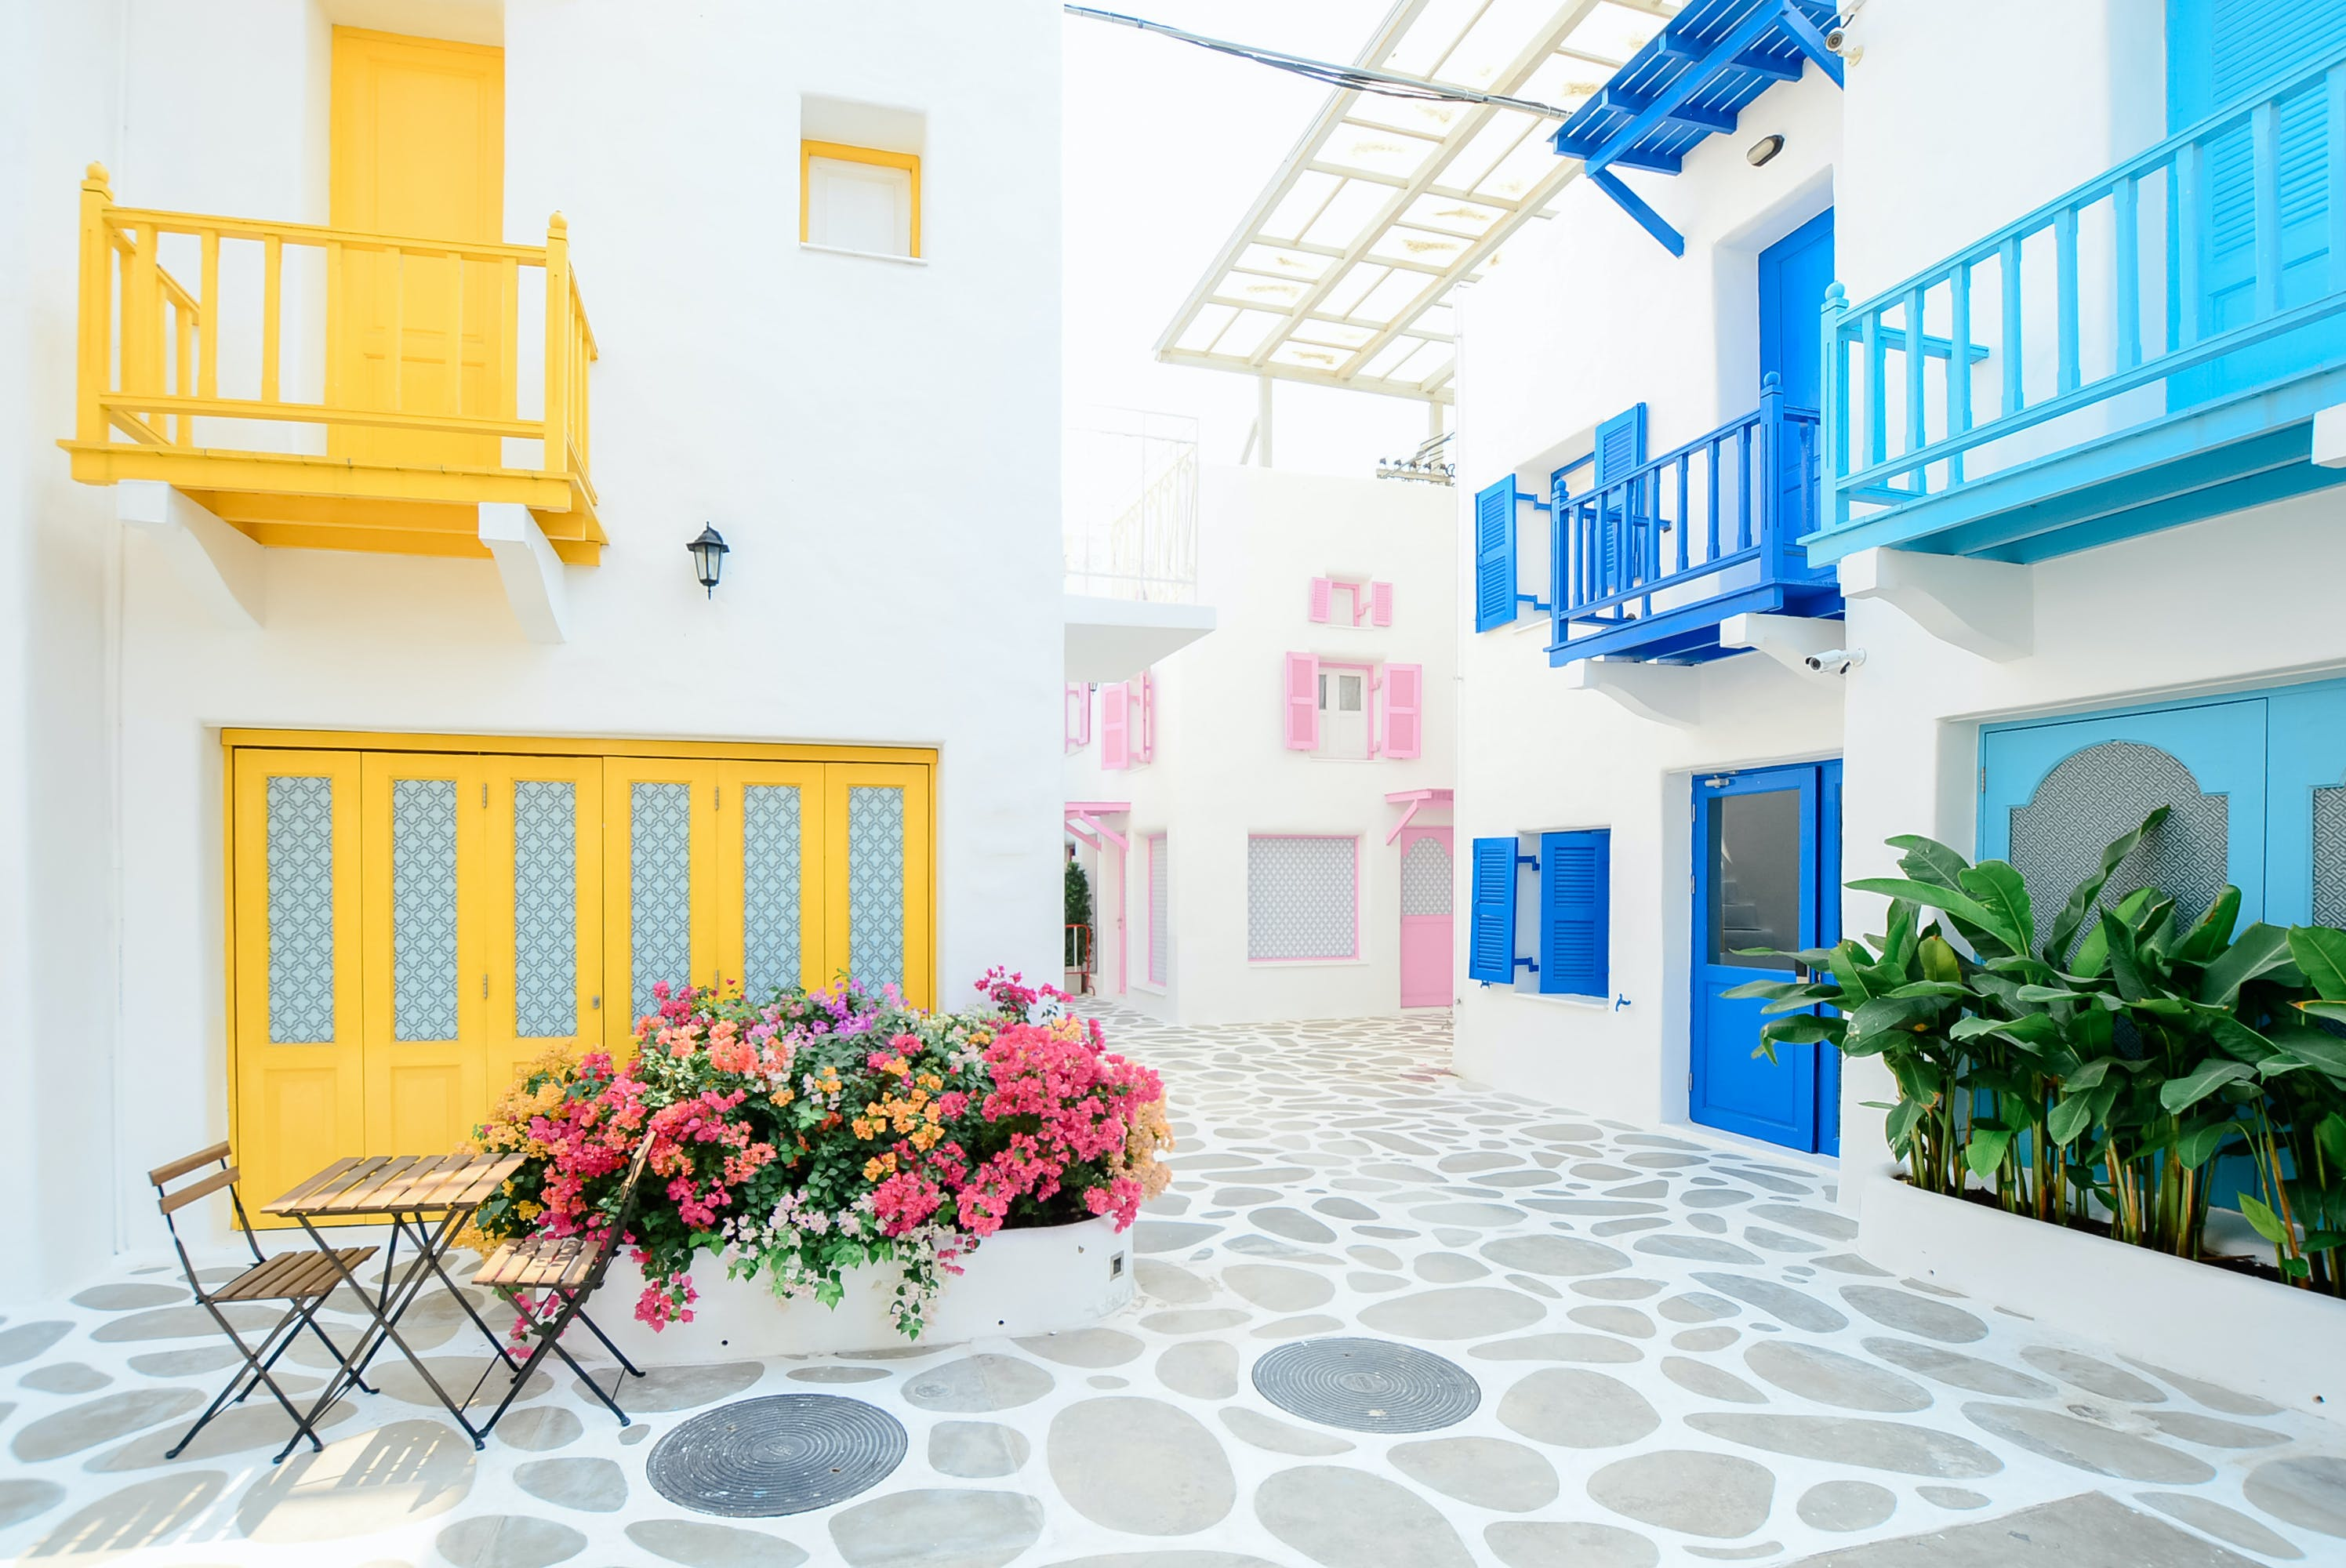 Architectural Photography of Three Pink, Blue, and Yellow Buildings